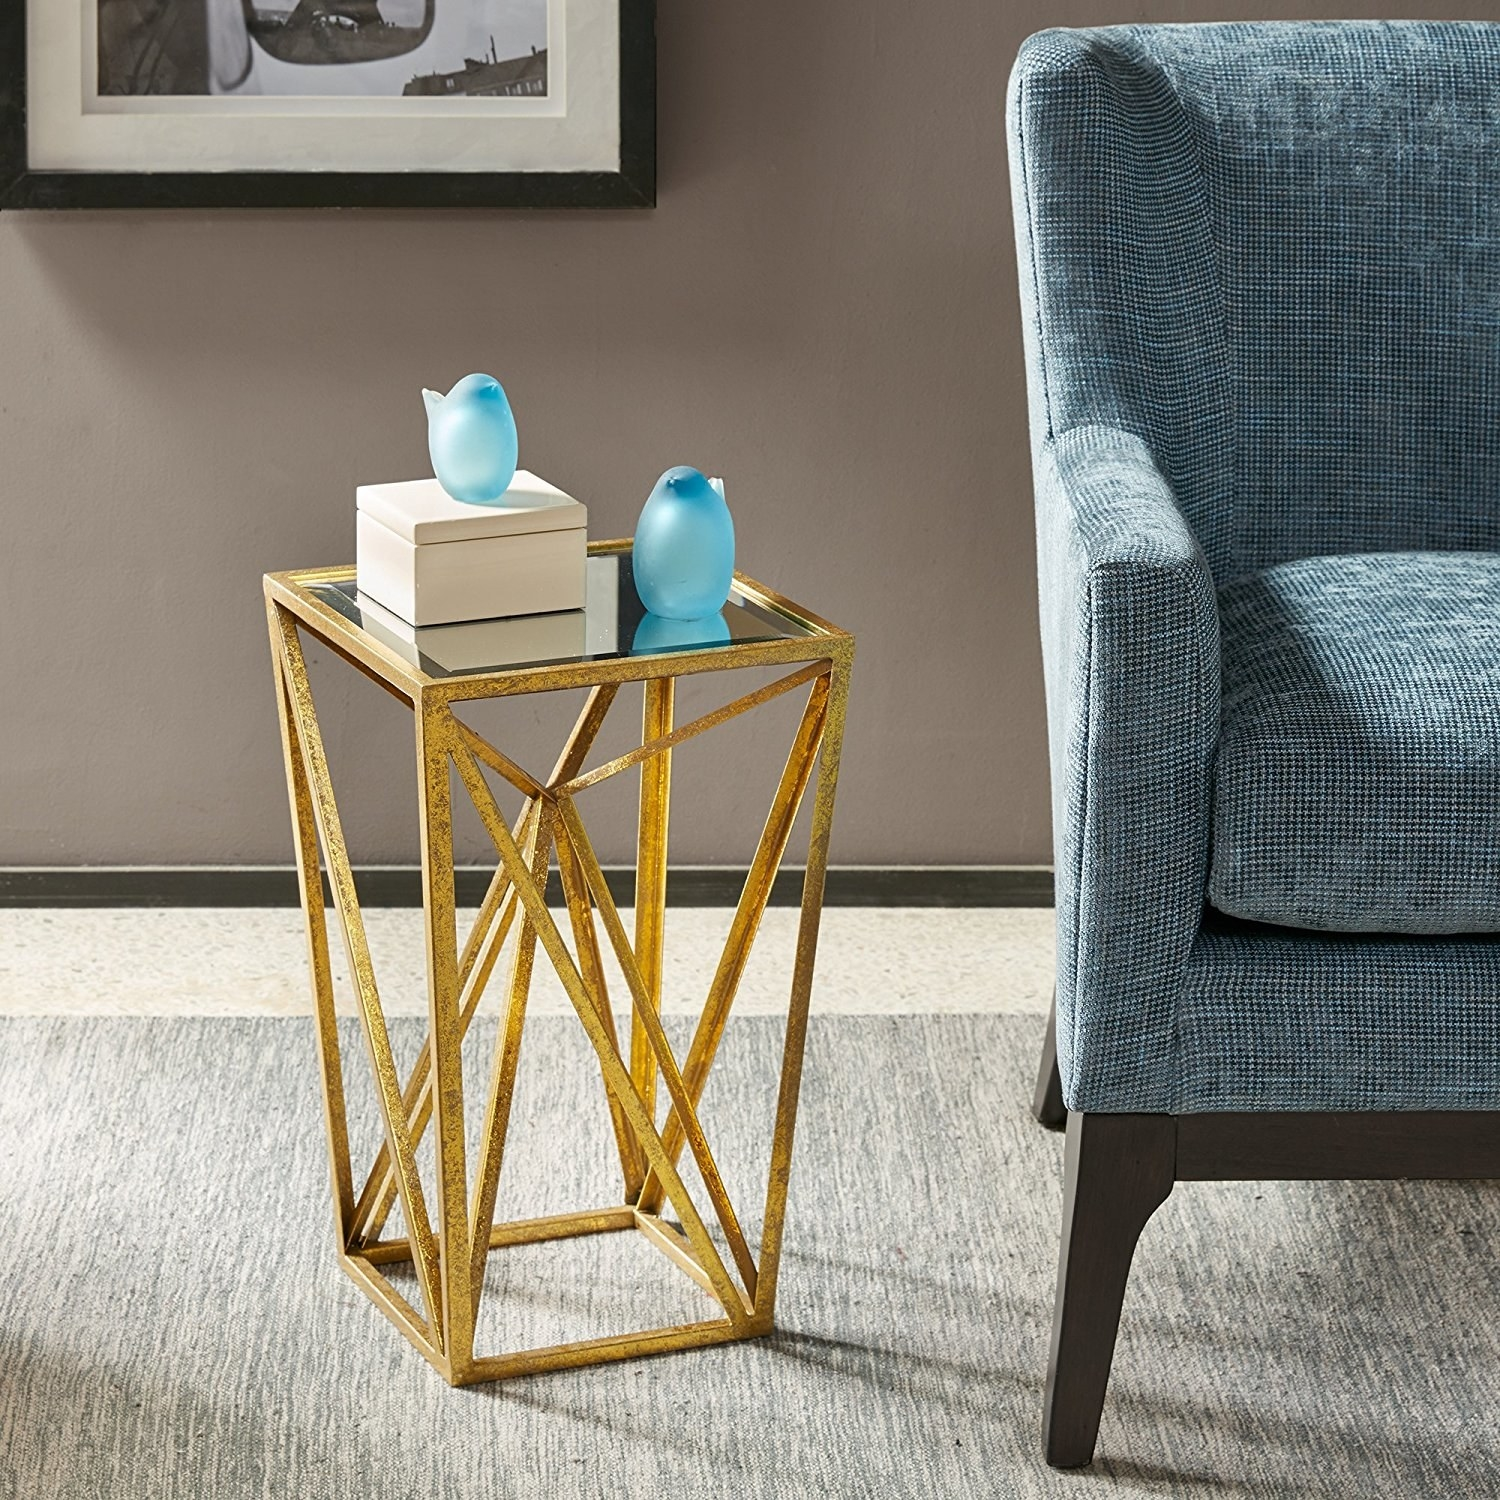 8. A Mirror Topped Accent Table So Glam, People Will Be Shocked Itu0027s From  Amazon.